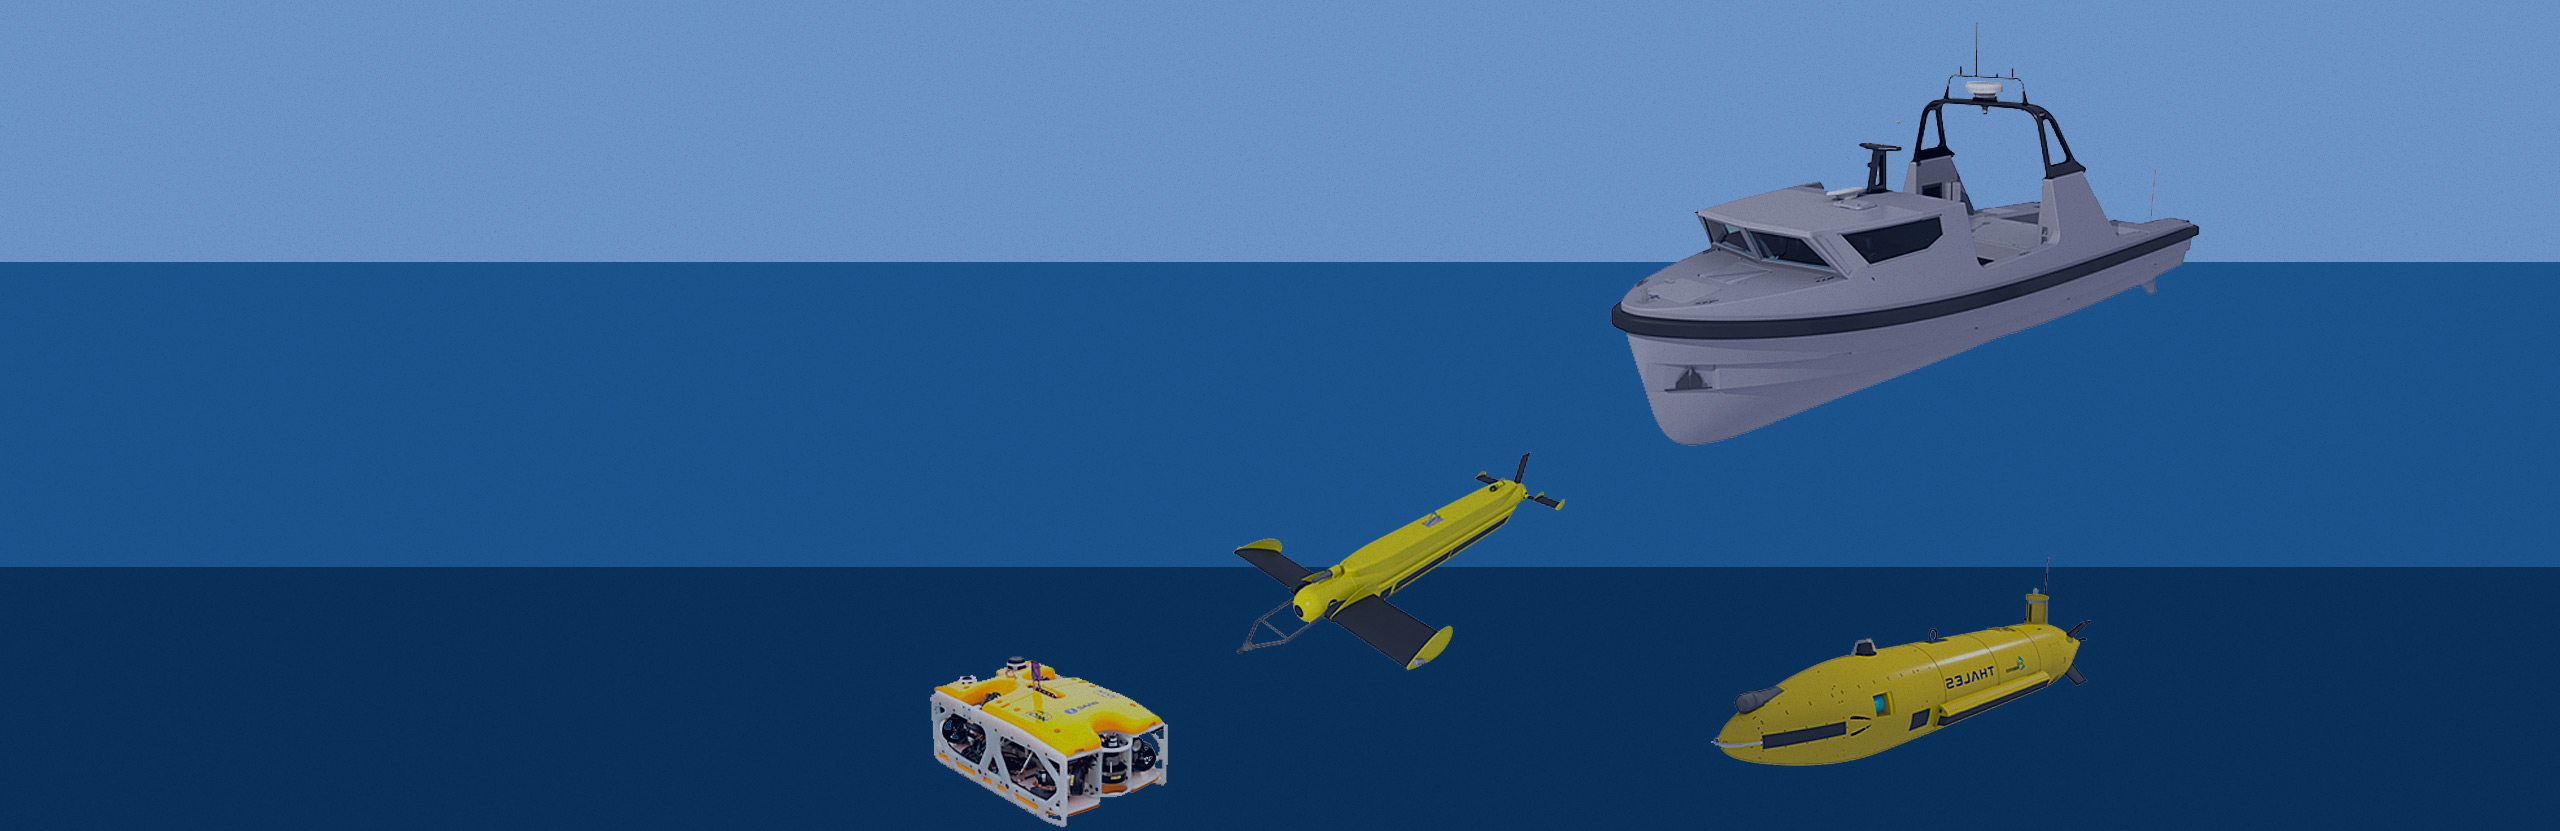 MMCM - Maritime Mine Counter Measures